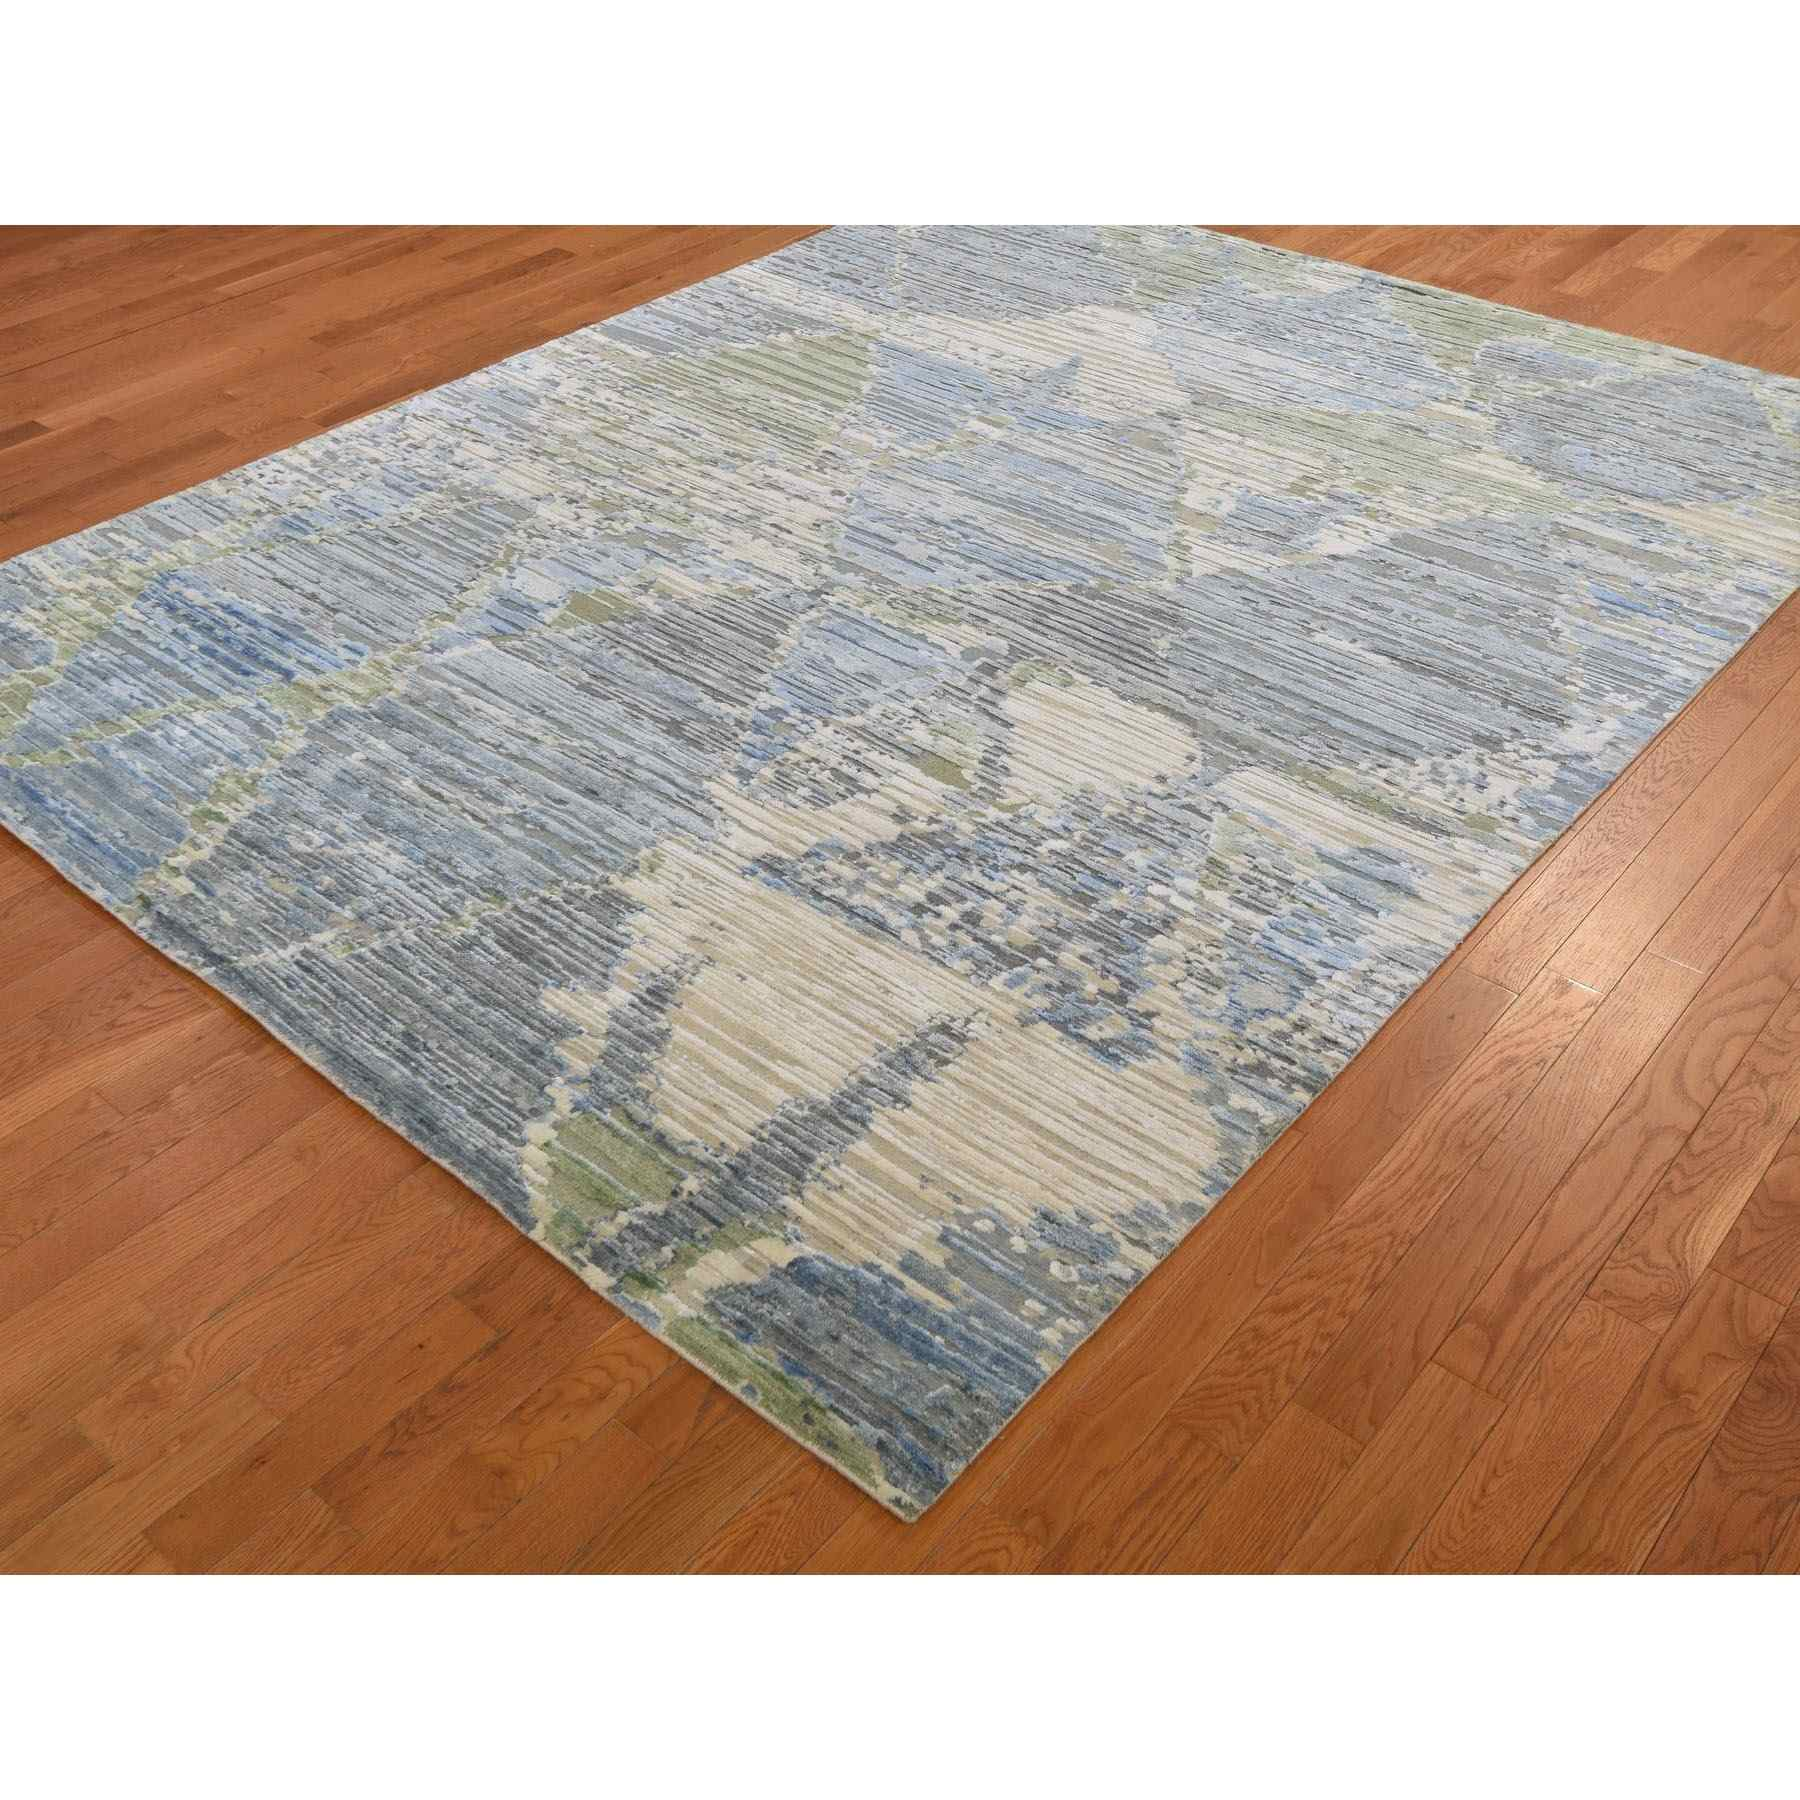 Modern-and-Contemporary-Hand-Knotted-Rug-242575